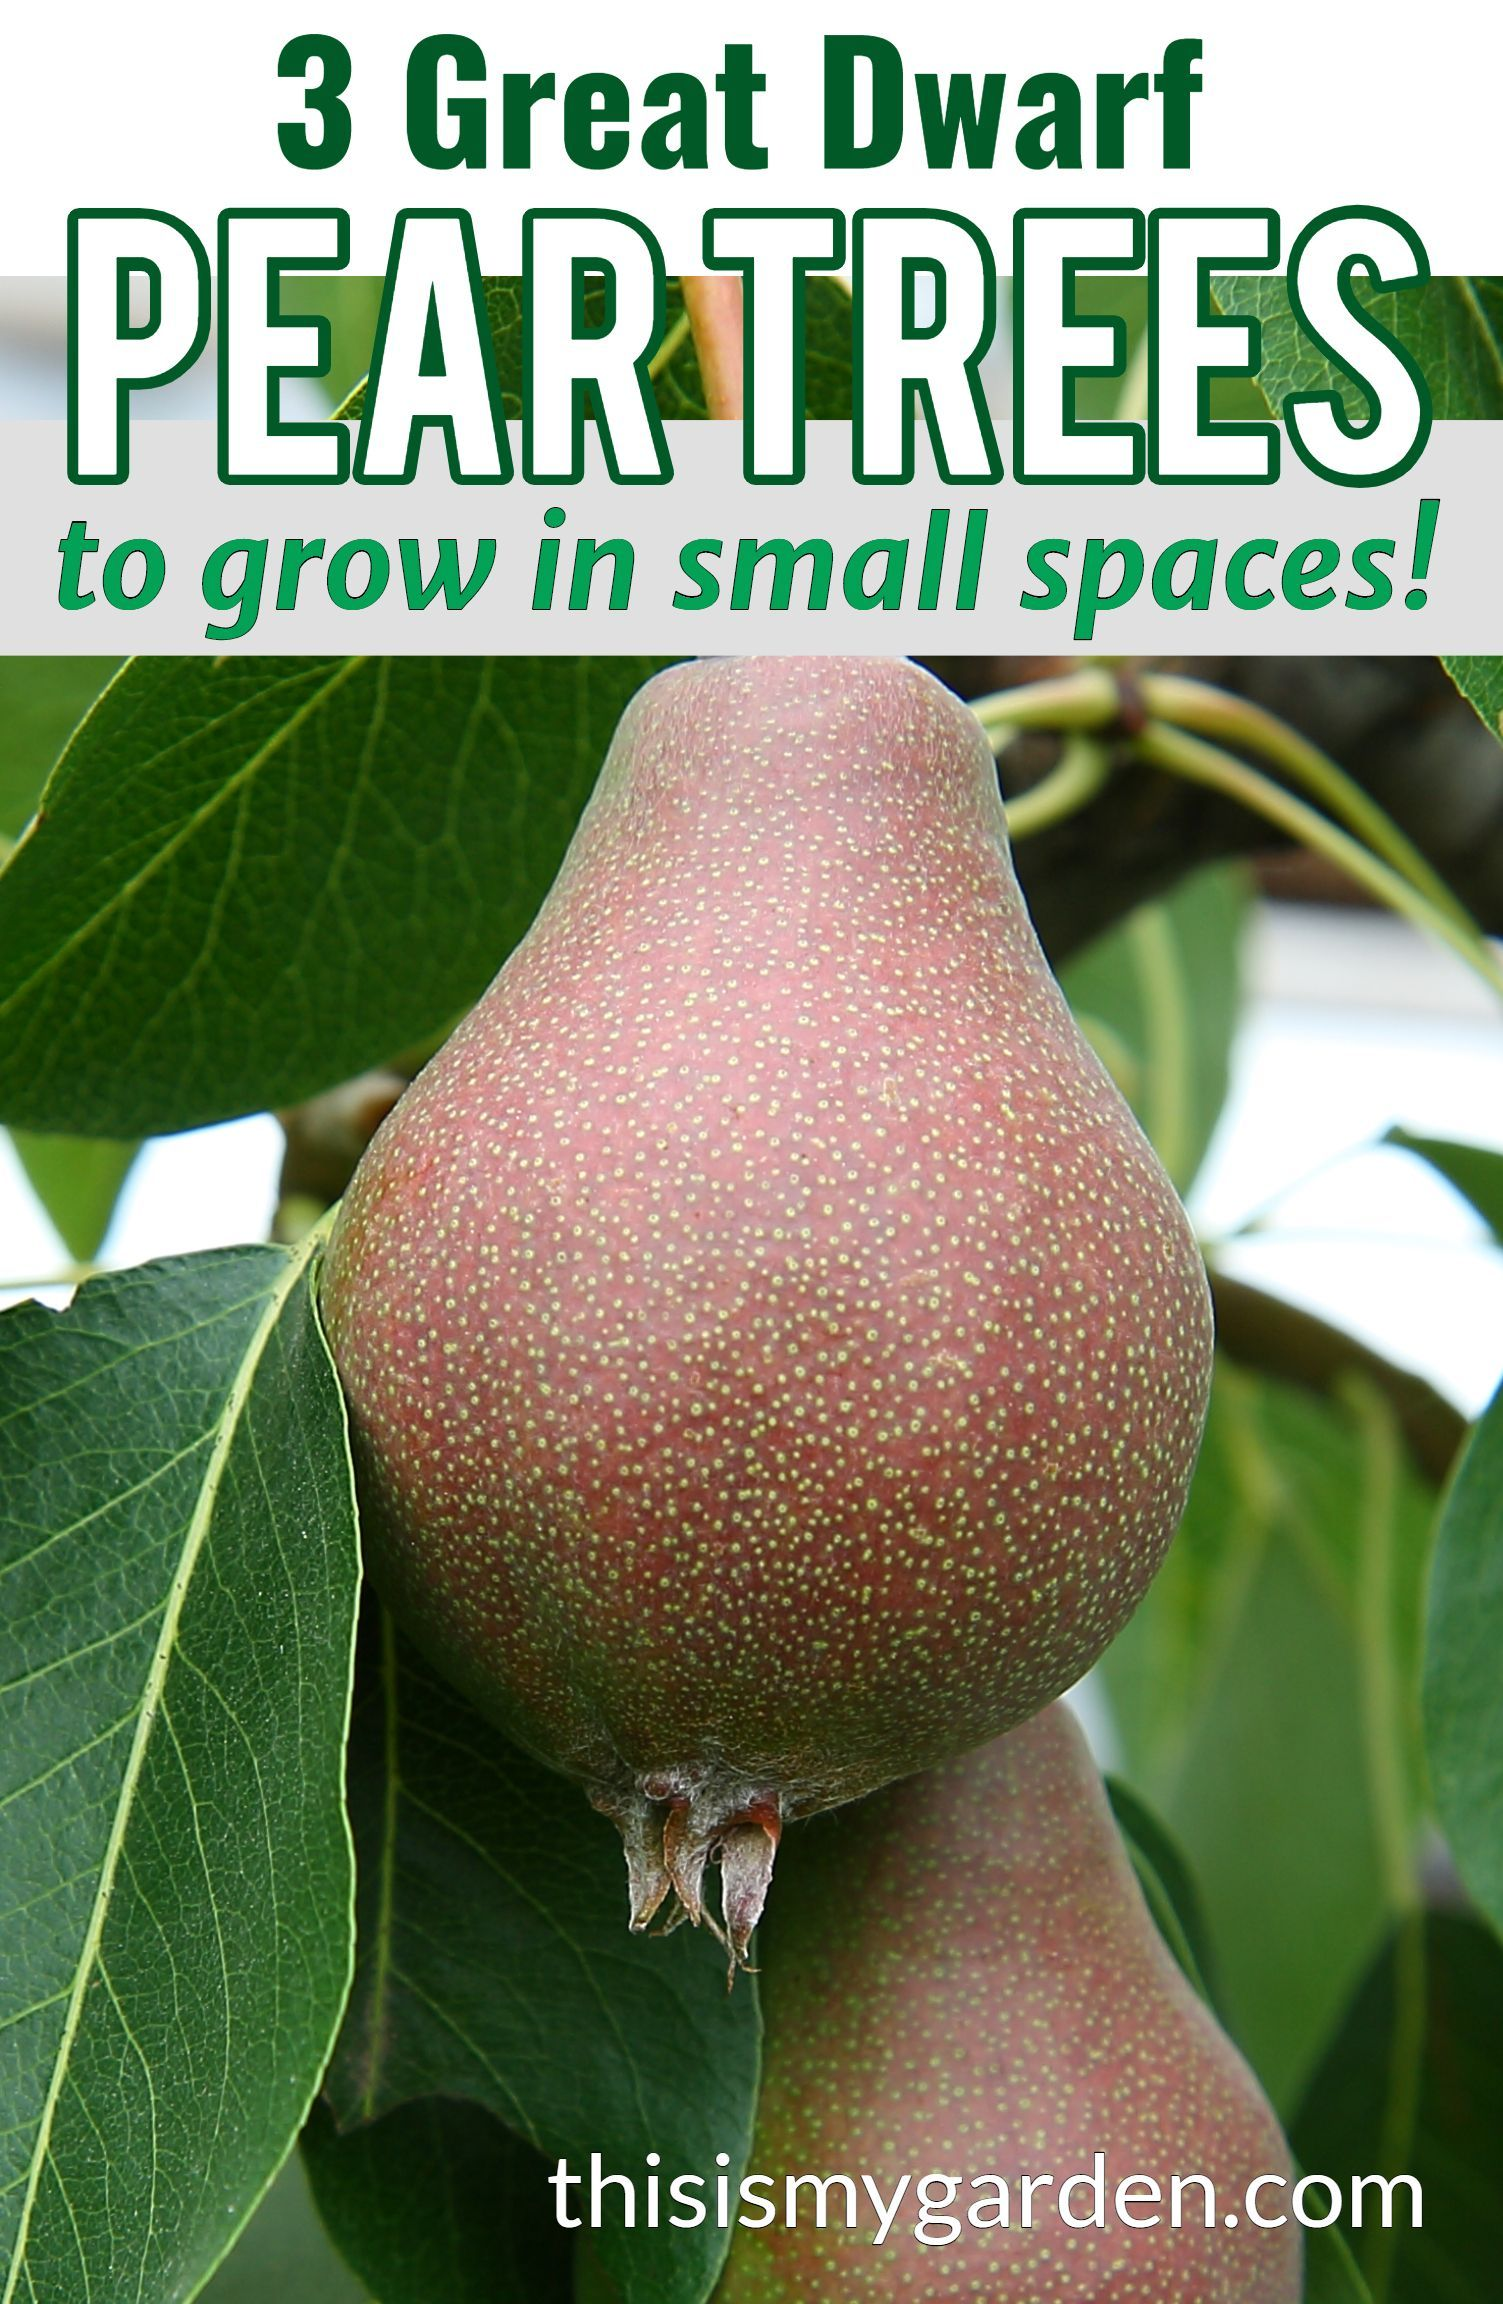 Planting Dwarf Pear Trees 3 Great Trees To Fit Almost Any Landscape In 2020 Growing Fruit Pear Dwarf Fruit Trees Dwarf Fruit Trees Fruit Trees Backyard Fruit Trees In Containers